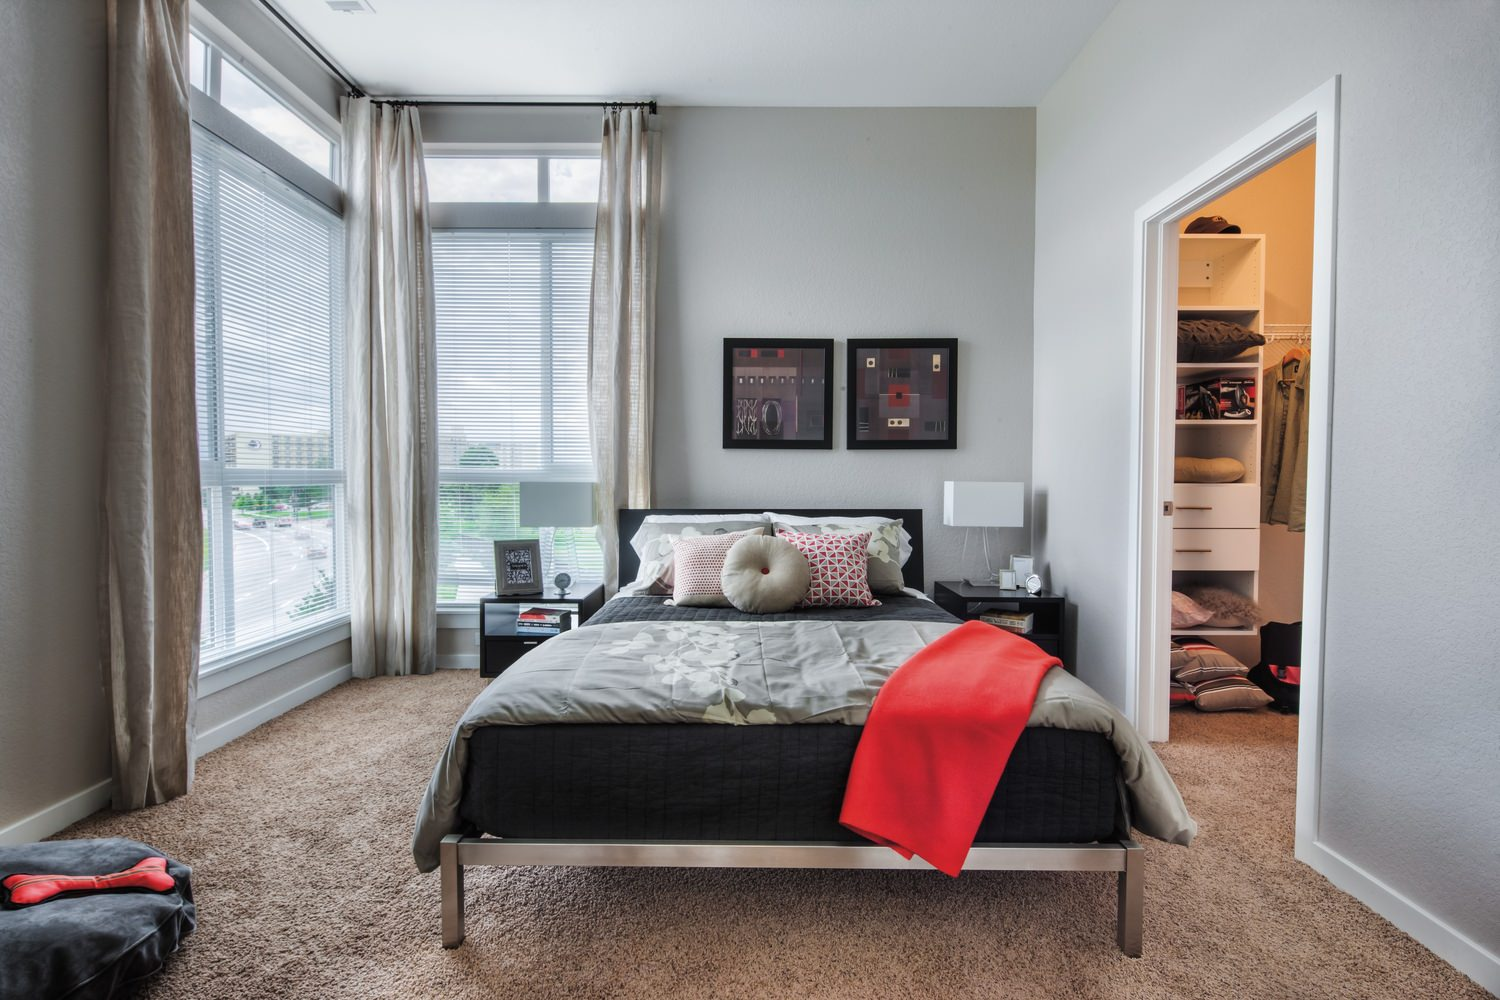 A bedroom full of furniture like a bed with grey sheets that is next to a large window.